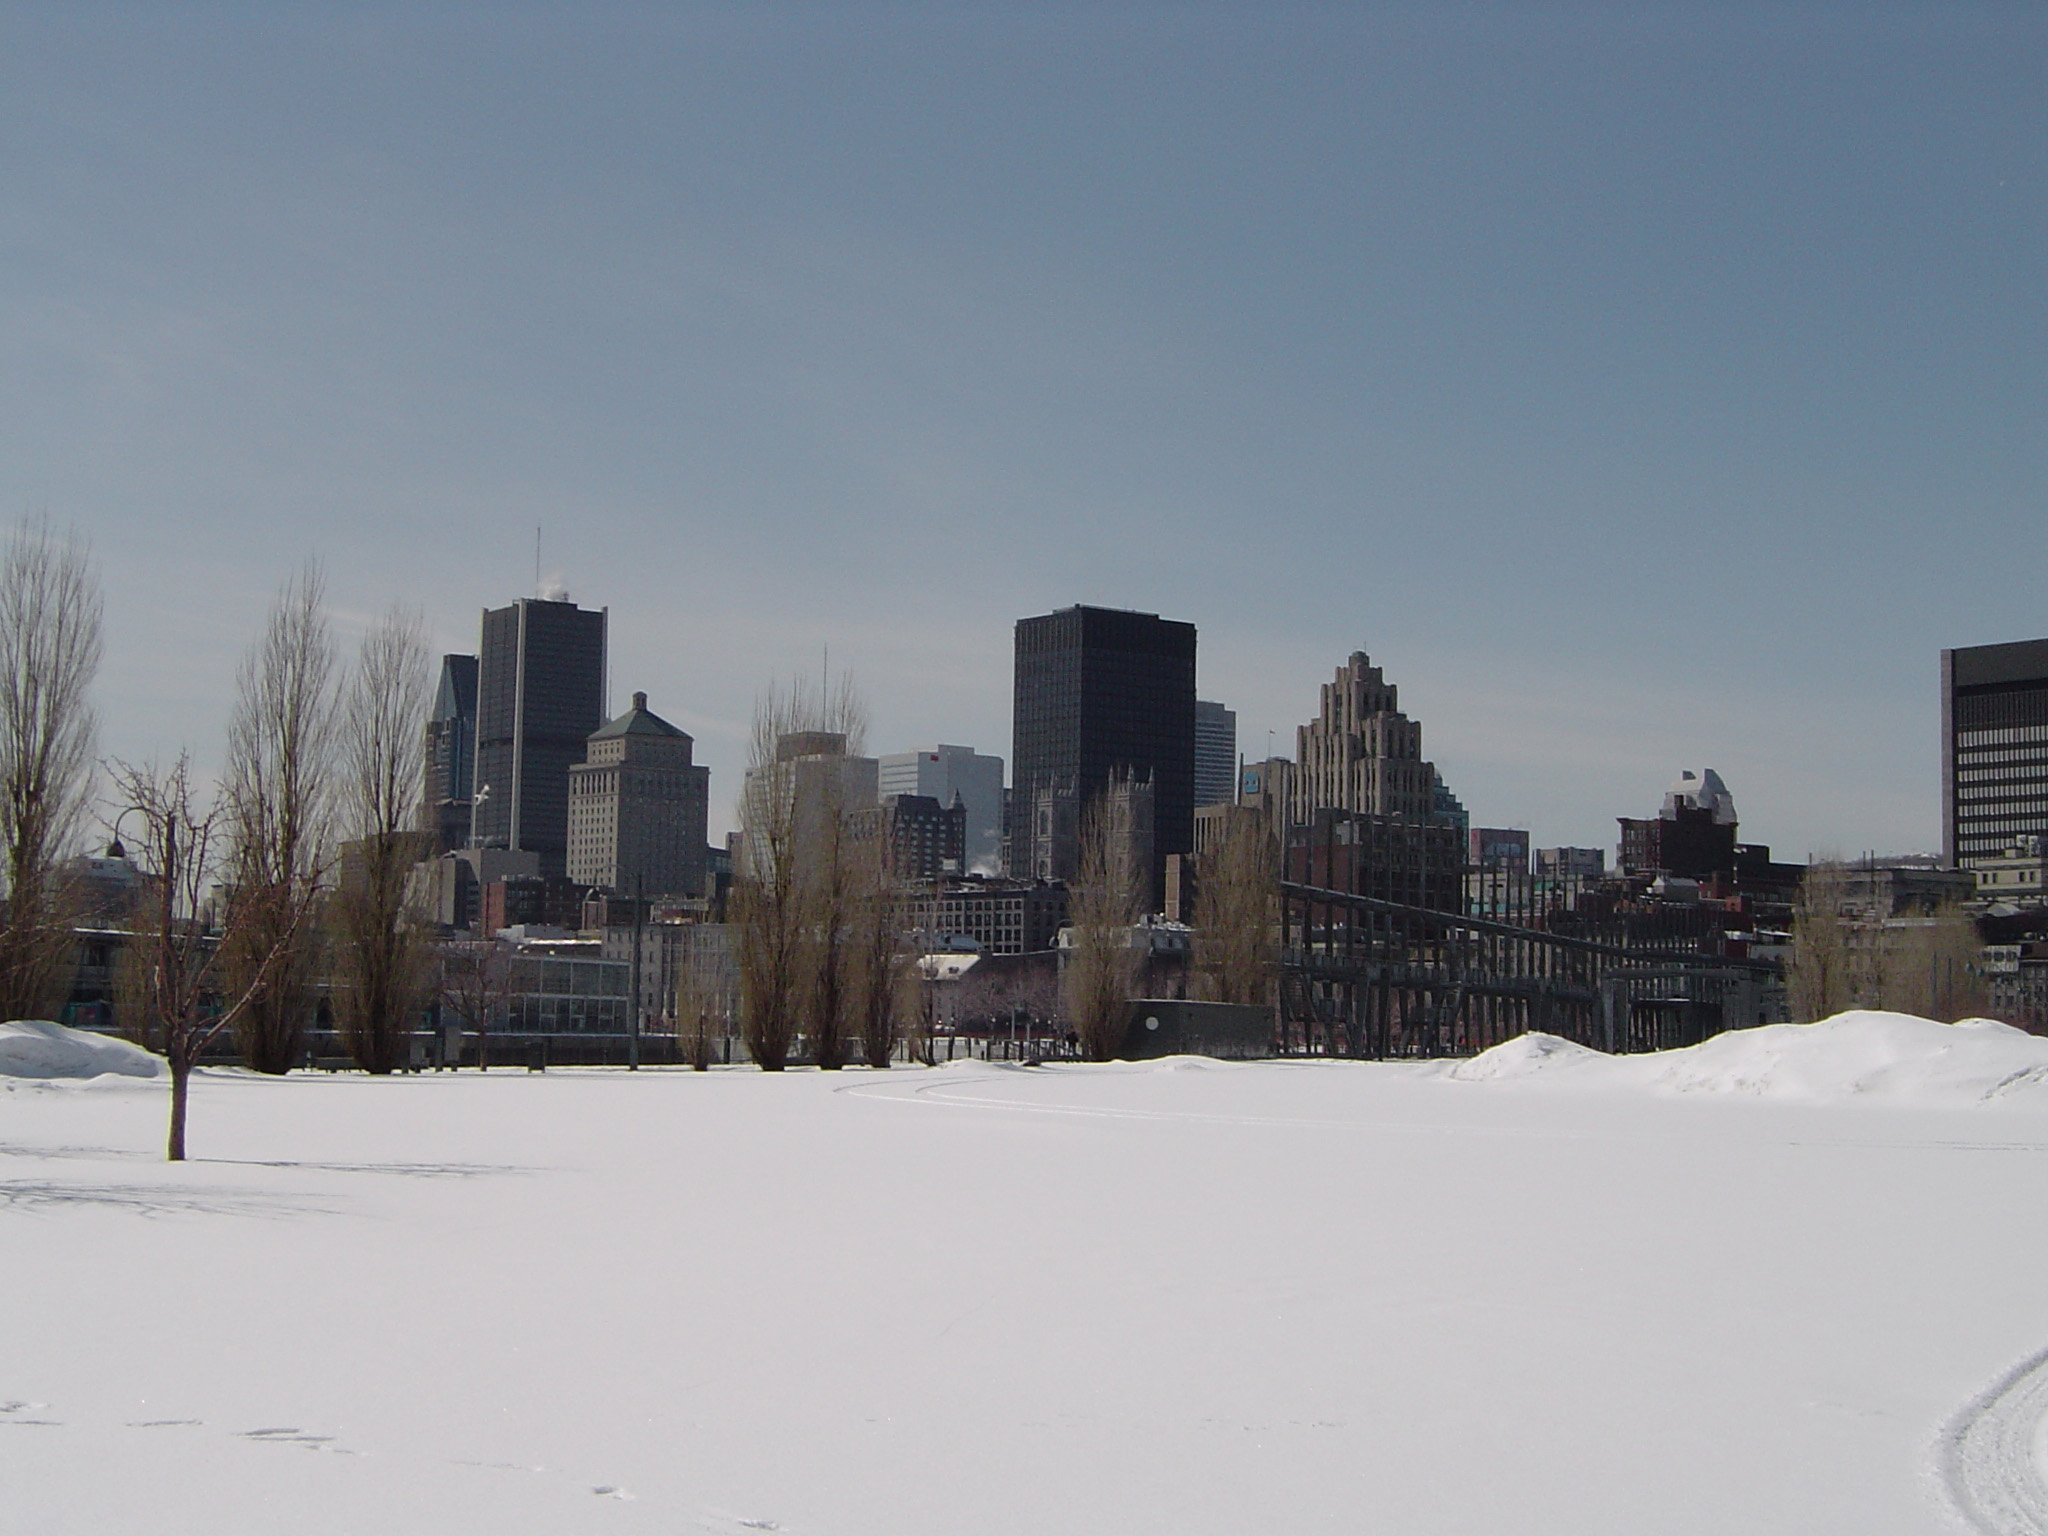 Montreal City Skyline in Winter as seen from Snow Covered Park